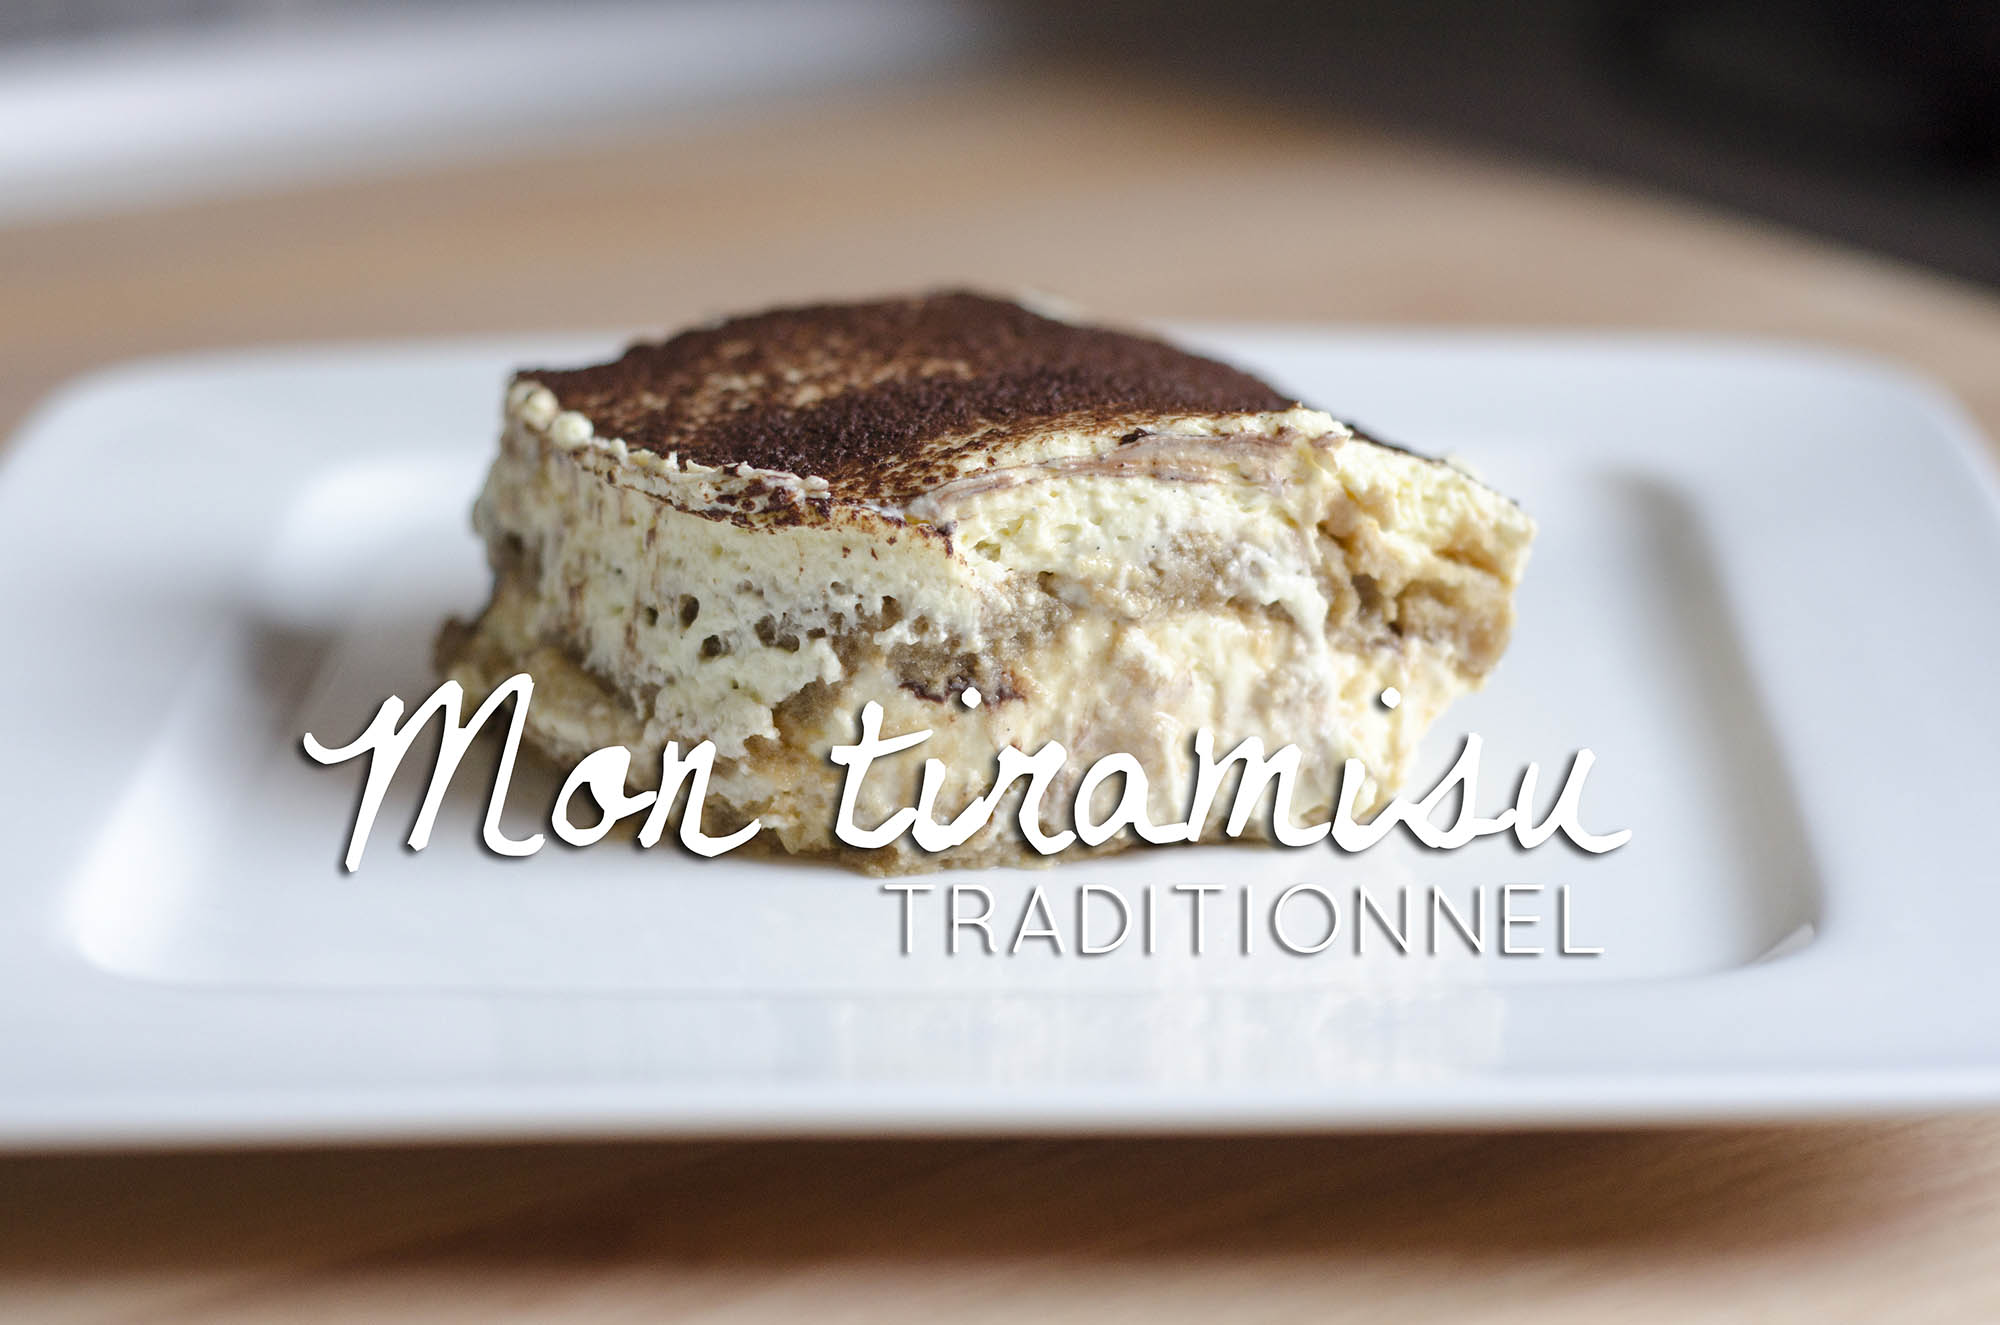 tiramisu traditionnel